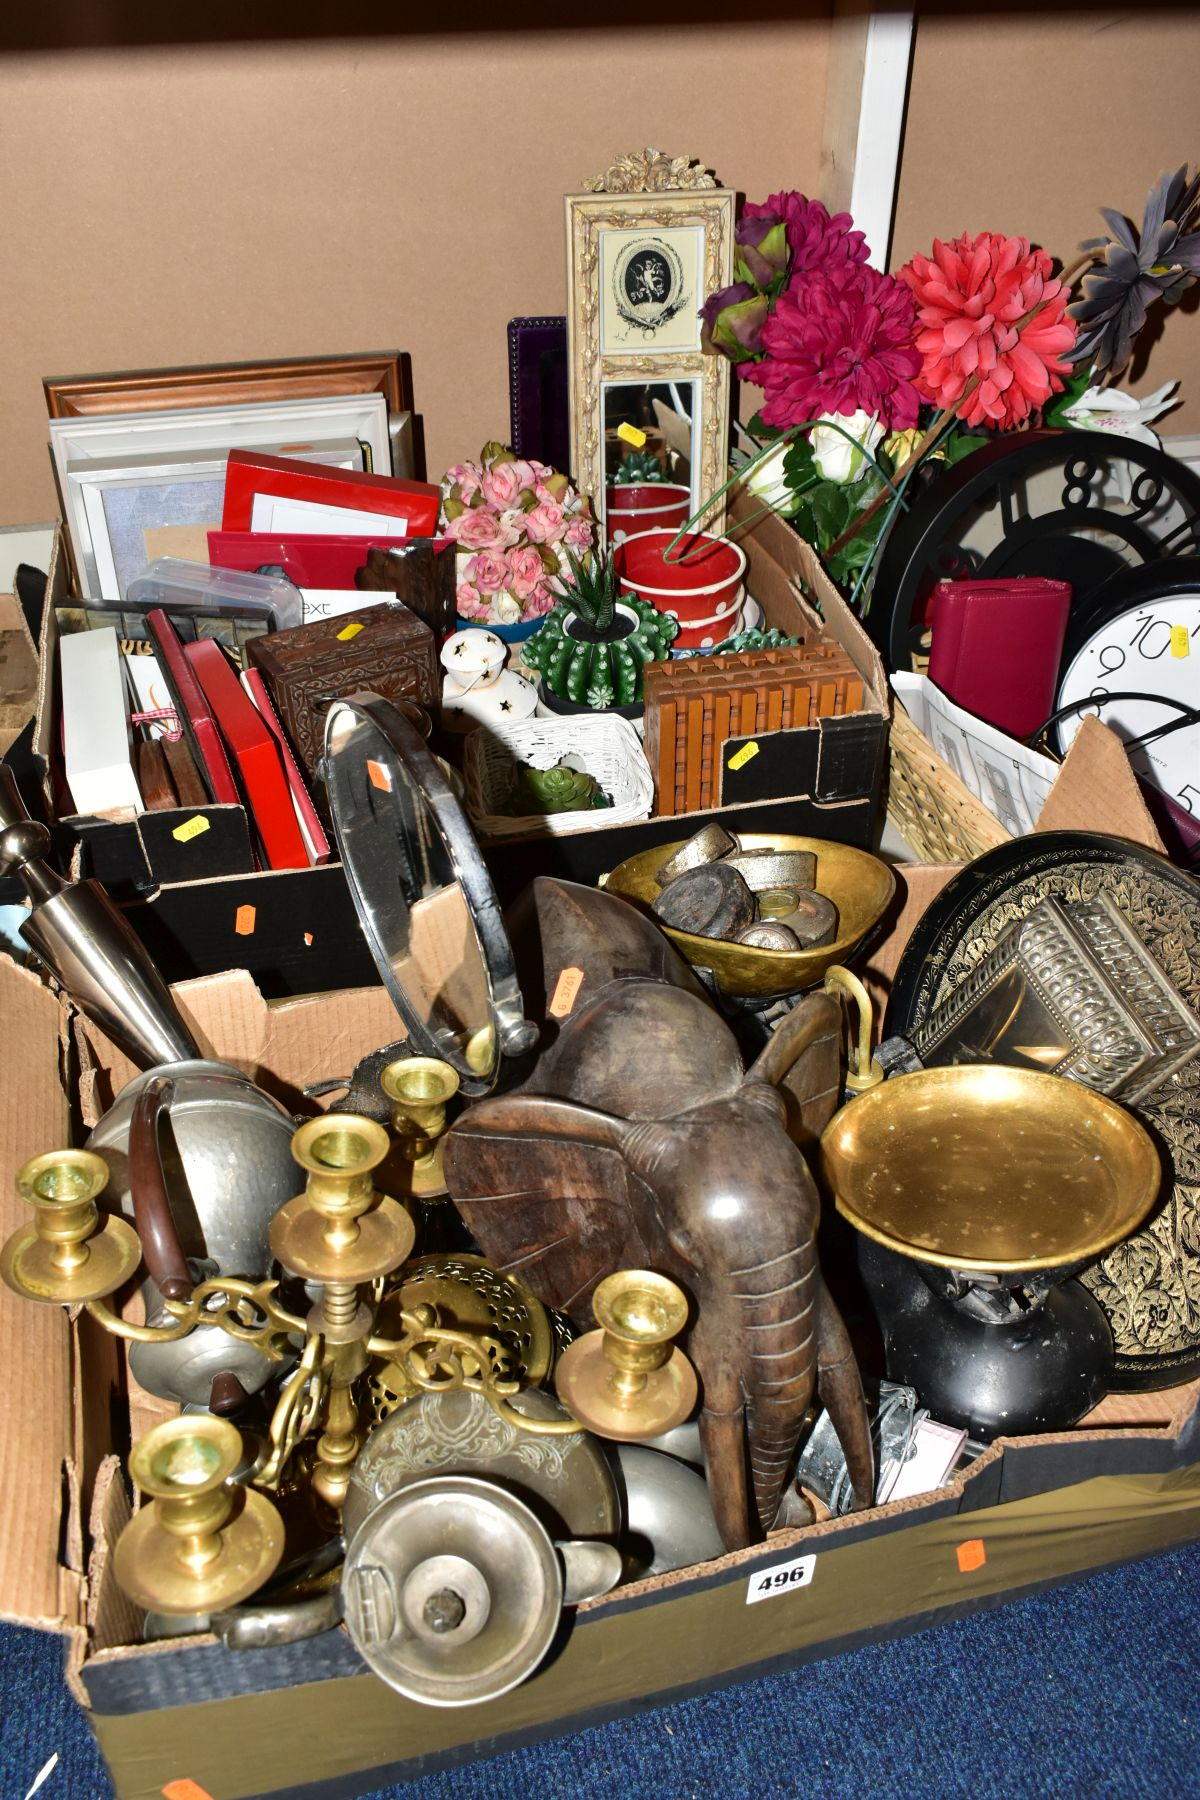 TWO BOXES AND A BASKET OF METALWARE, SUNDRIES, PICTURE FRAMES, ETC, to include various clocks (two